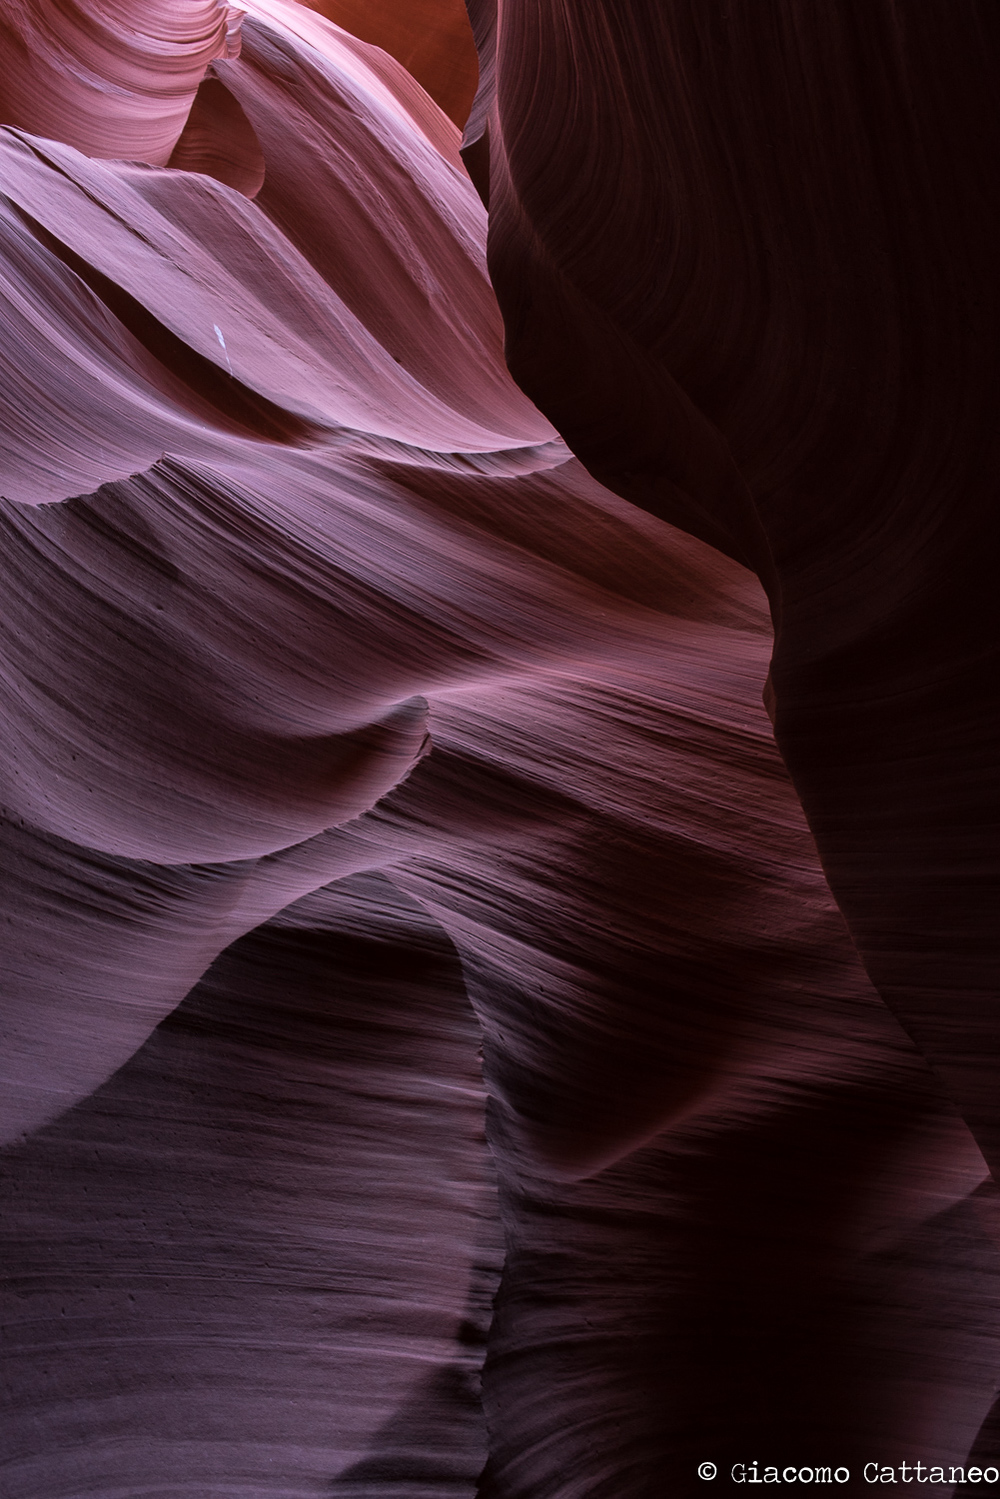 Antilope Canyon - ISO 640, 35mm, f/7.1, 1/25 sec